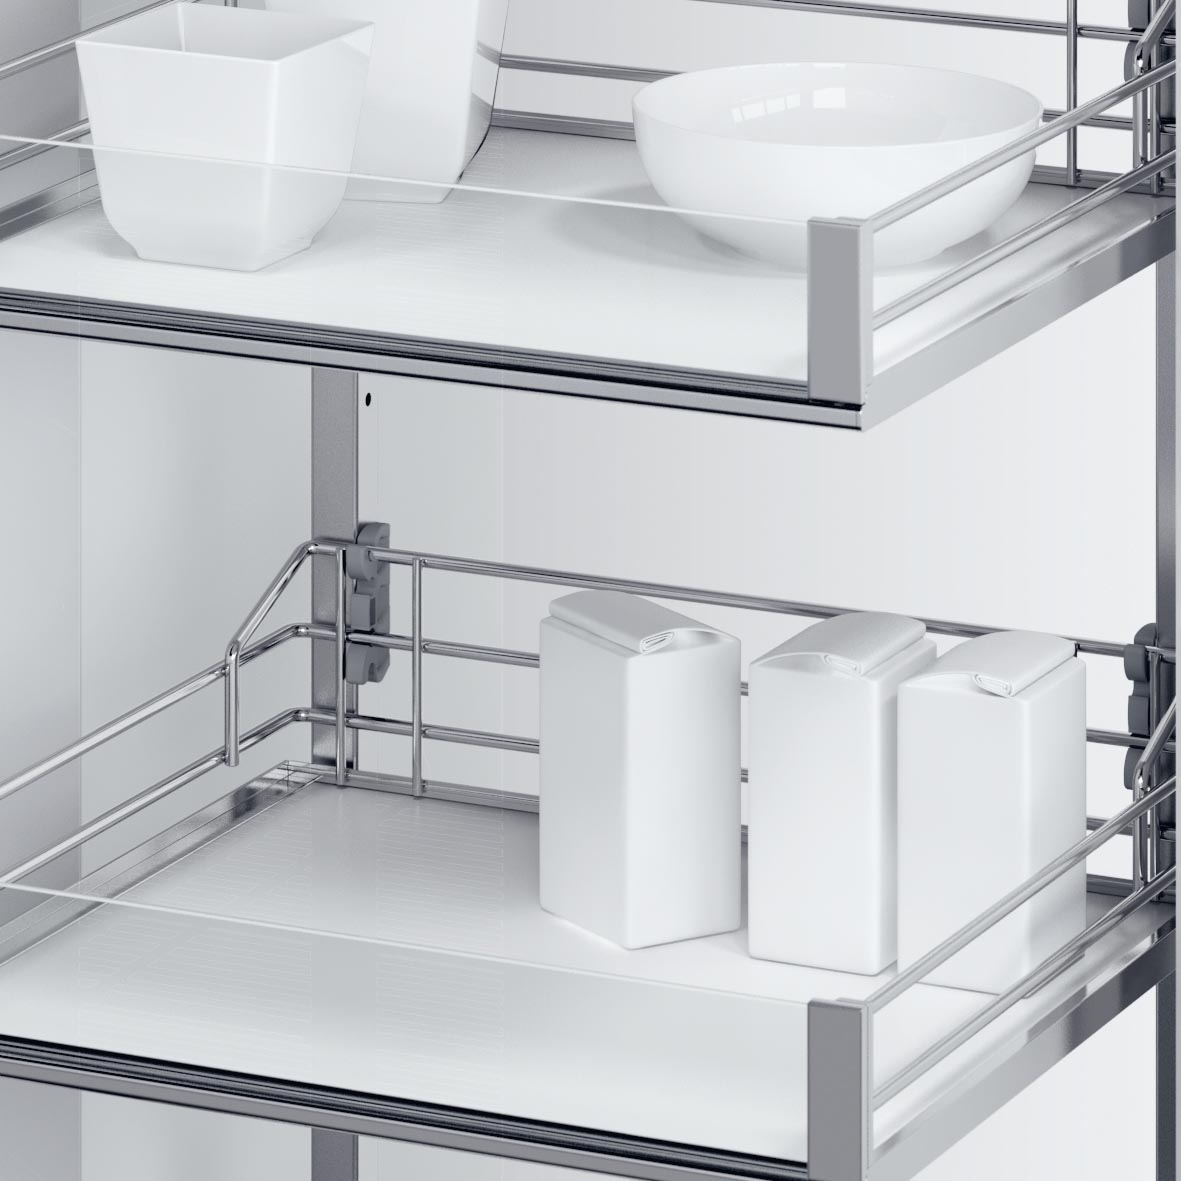 Vauth-Sagel VSA tall cabinet - The Kitchen and Bathroom Blog